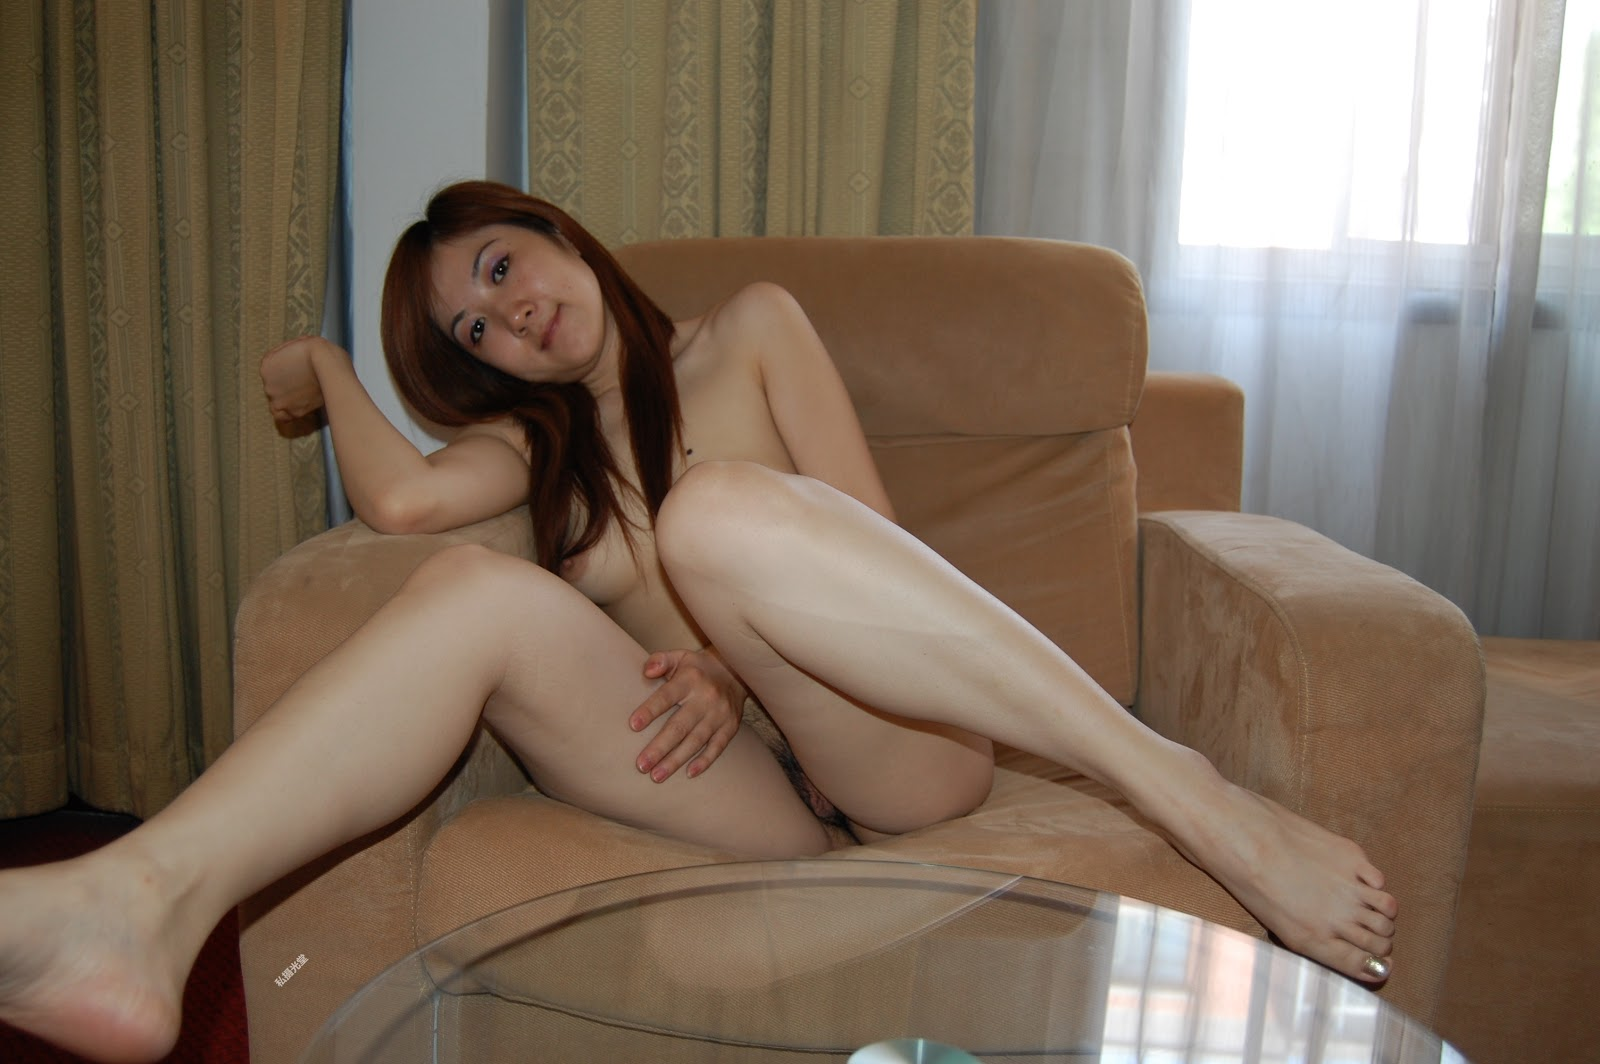 Chinese Nude_Art_Photos_-_269_-_YanRan_Vol_3.rar